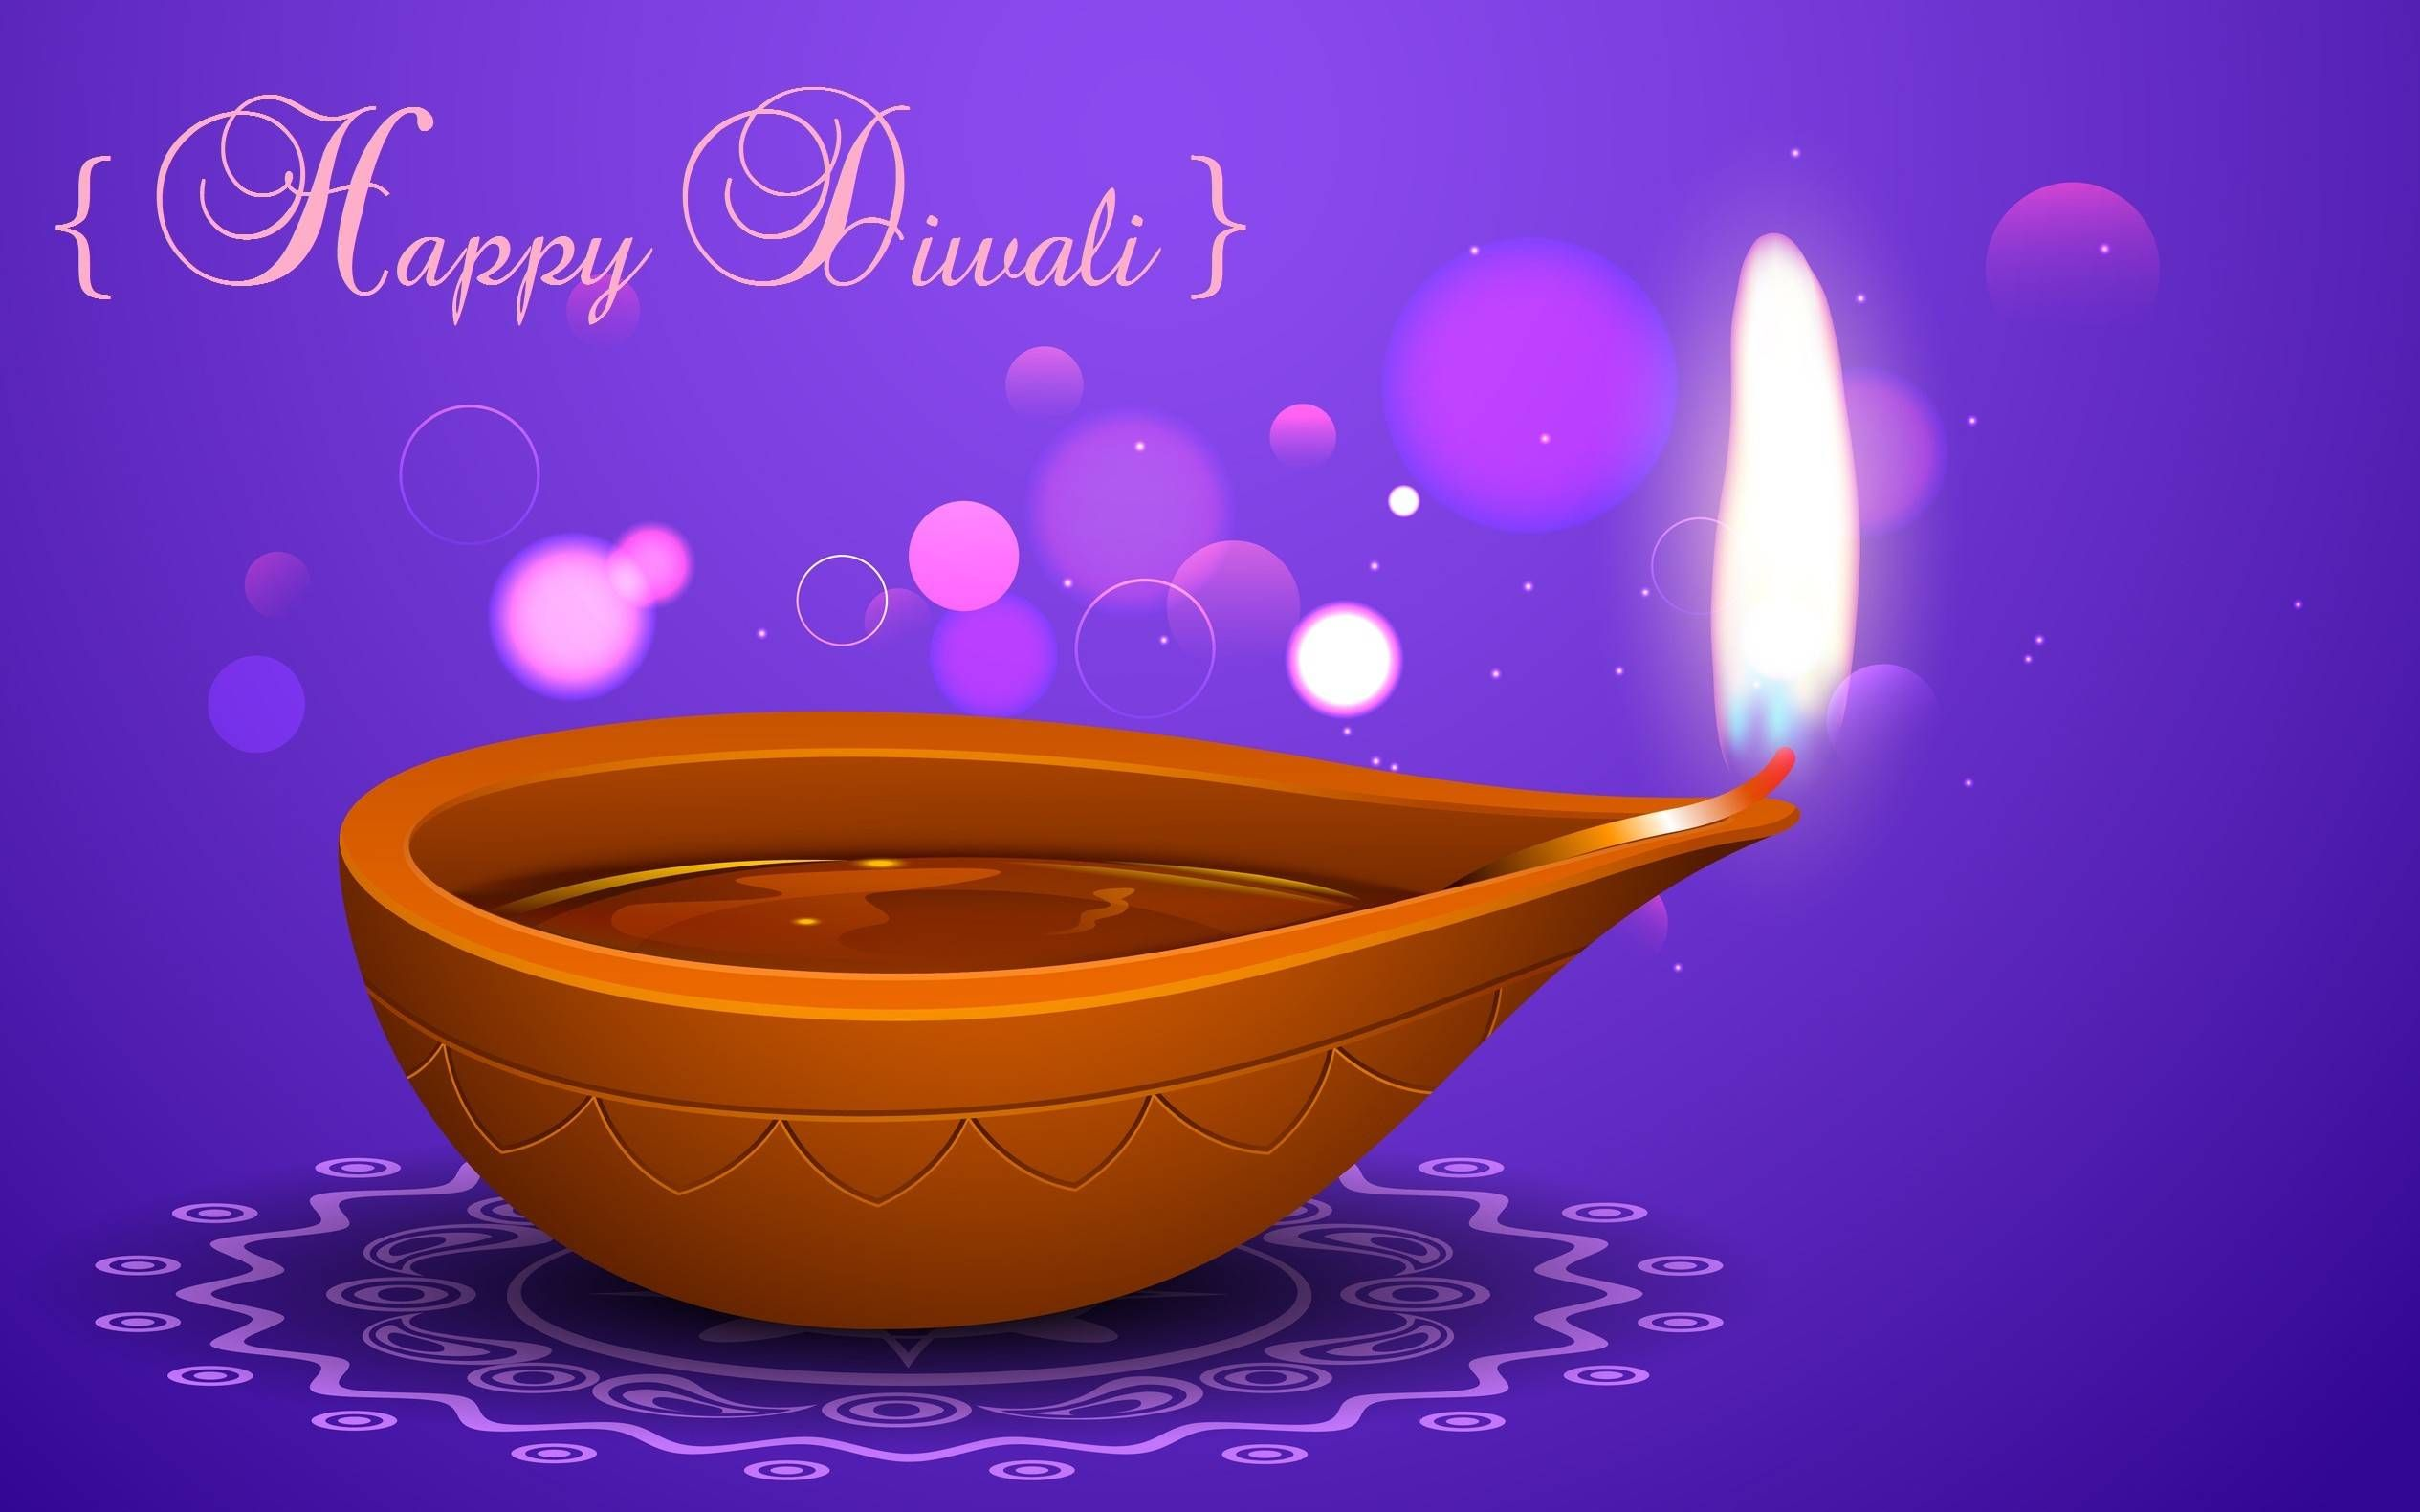 happy diwali wallpaper 2014 free desktop wallpapers wallpapers for free in high quality resolutions